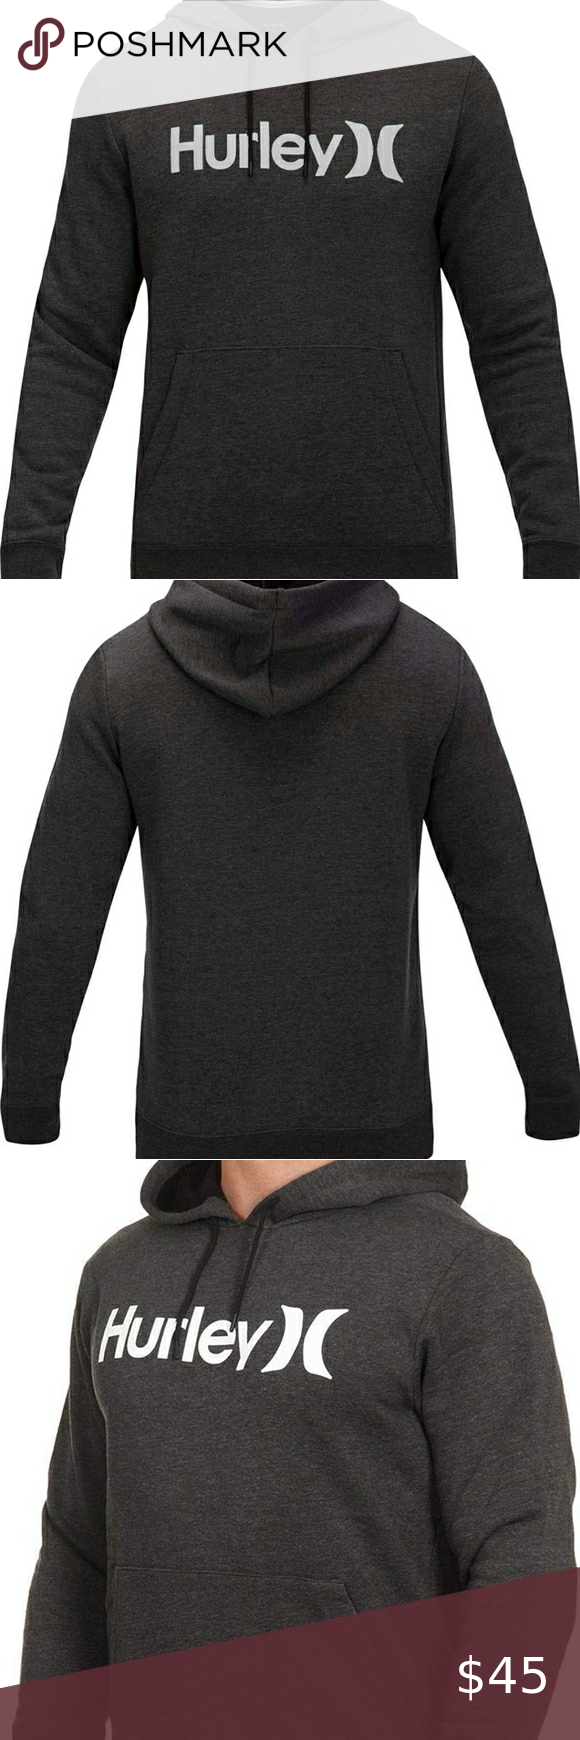 Hurley Mens Surf Check One And Only Hoodie Hurley Mens Hurley Shirt Sweatshirt Shirt [ 1740 x 580 Pixel ]